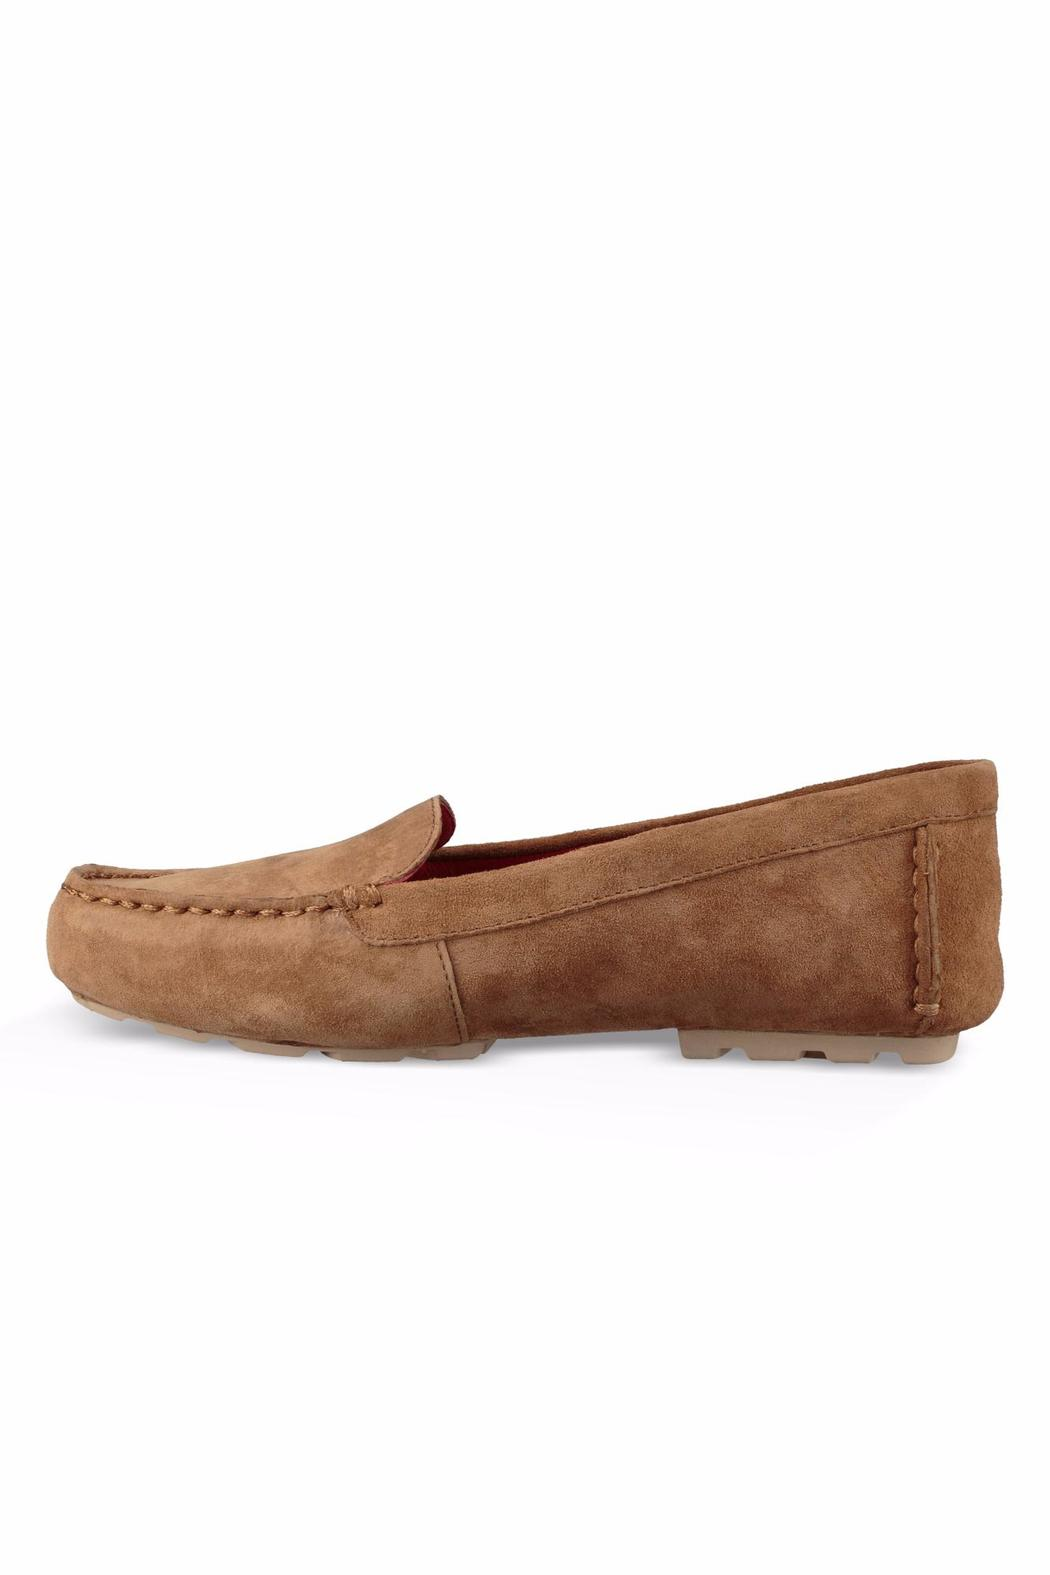 Ugg Australia Ugg Milana Driver From California By